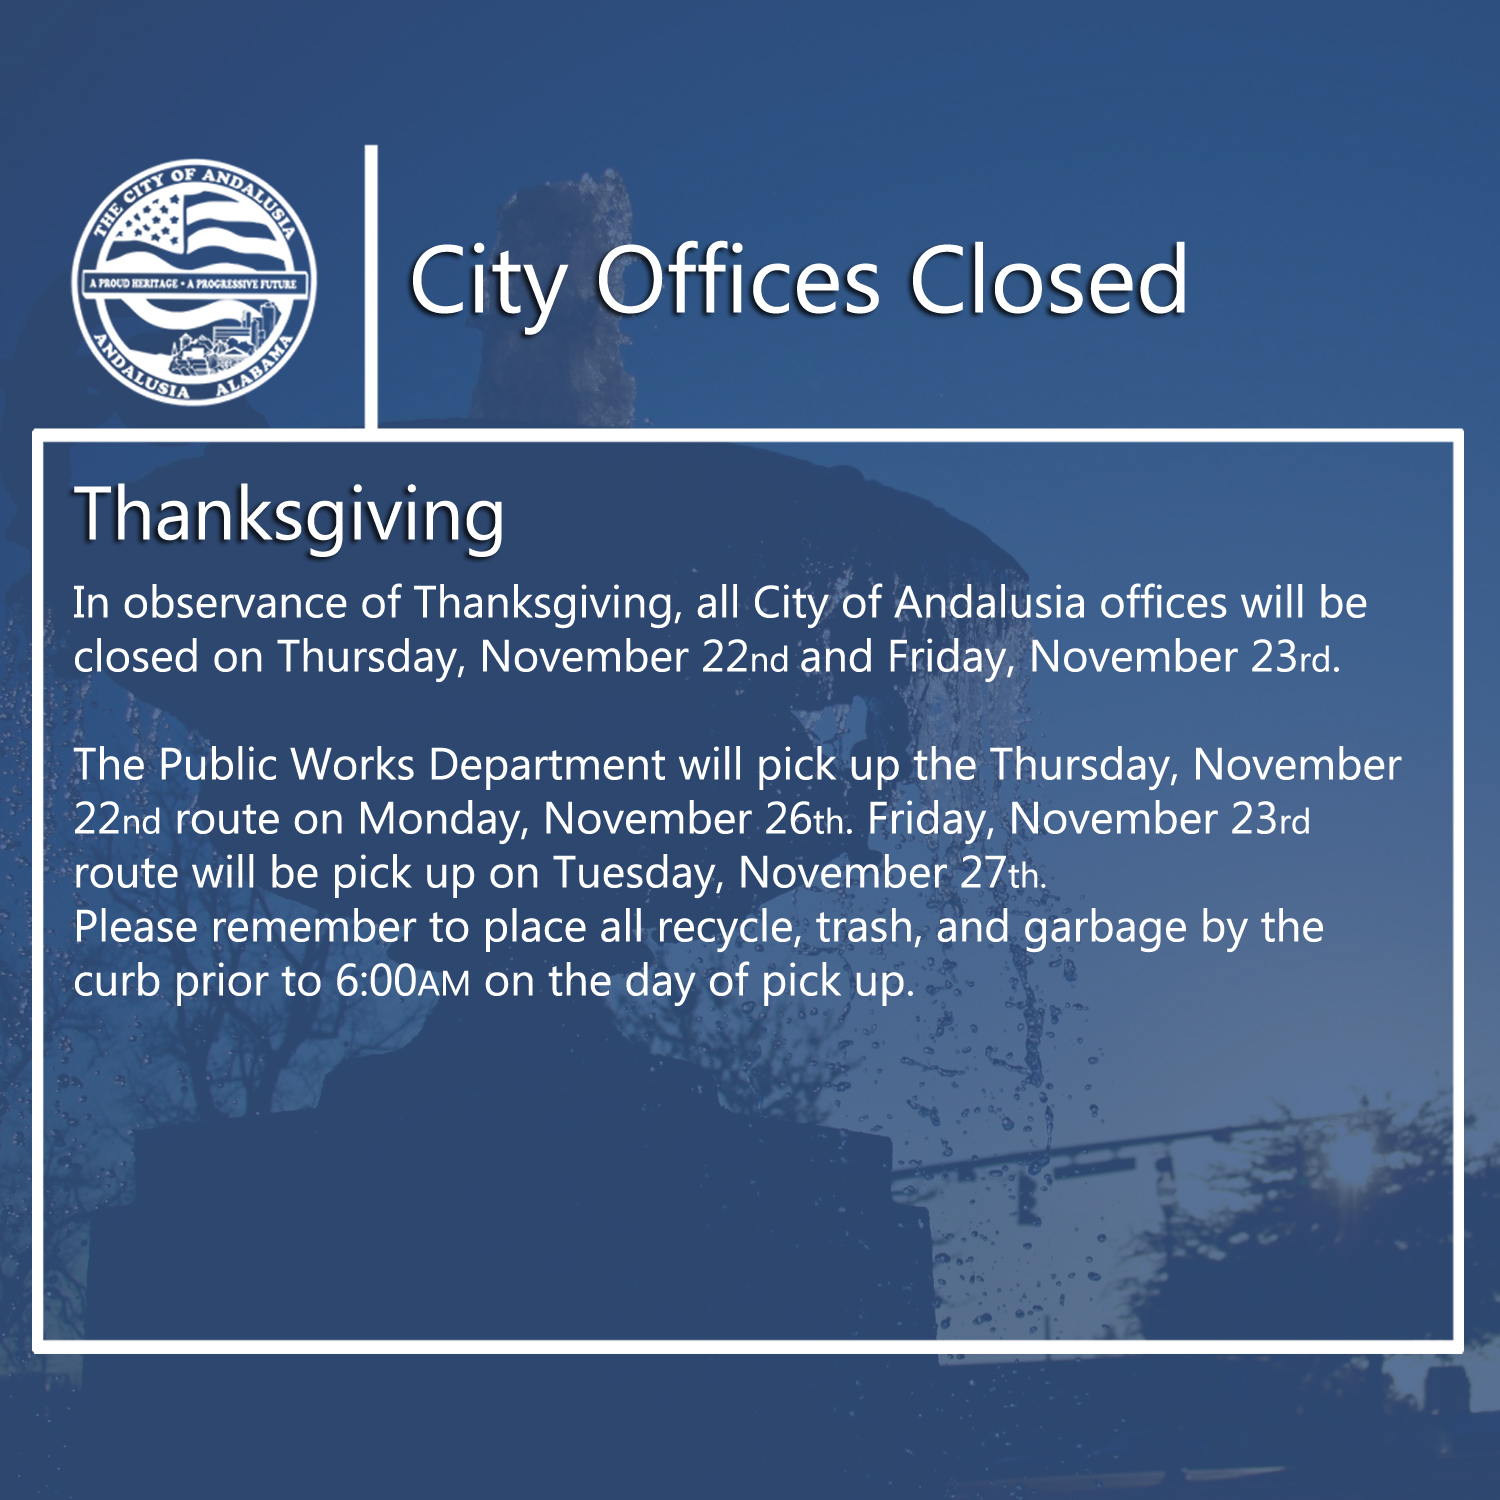 Facebook City Offices Closed Thanksgiving